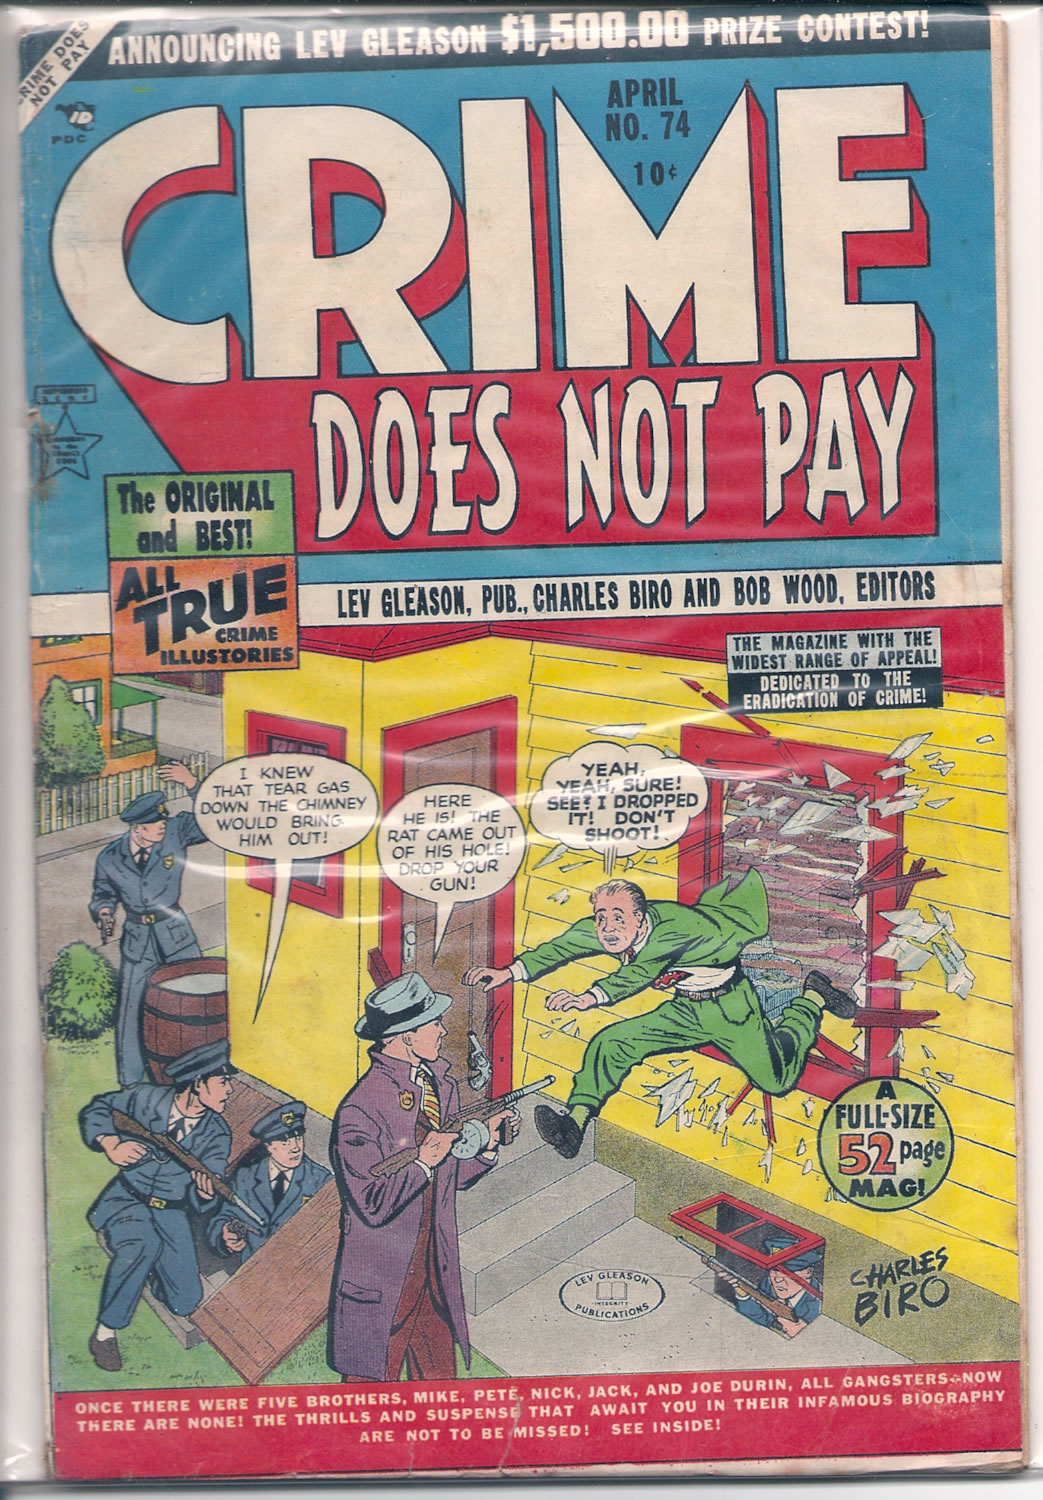 CRIME DOES NOT PAY